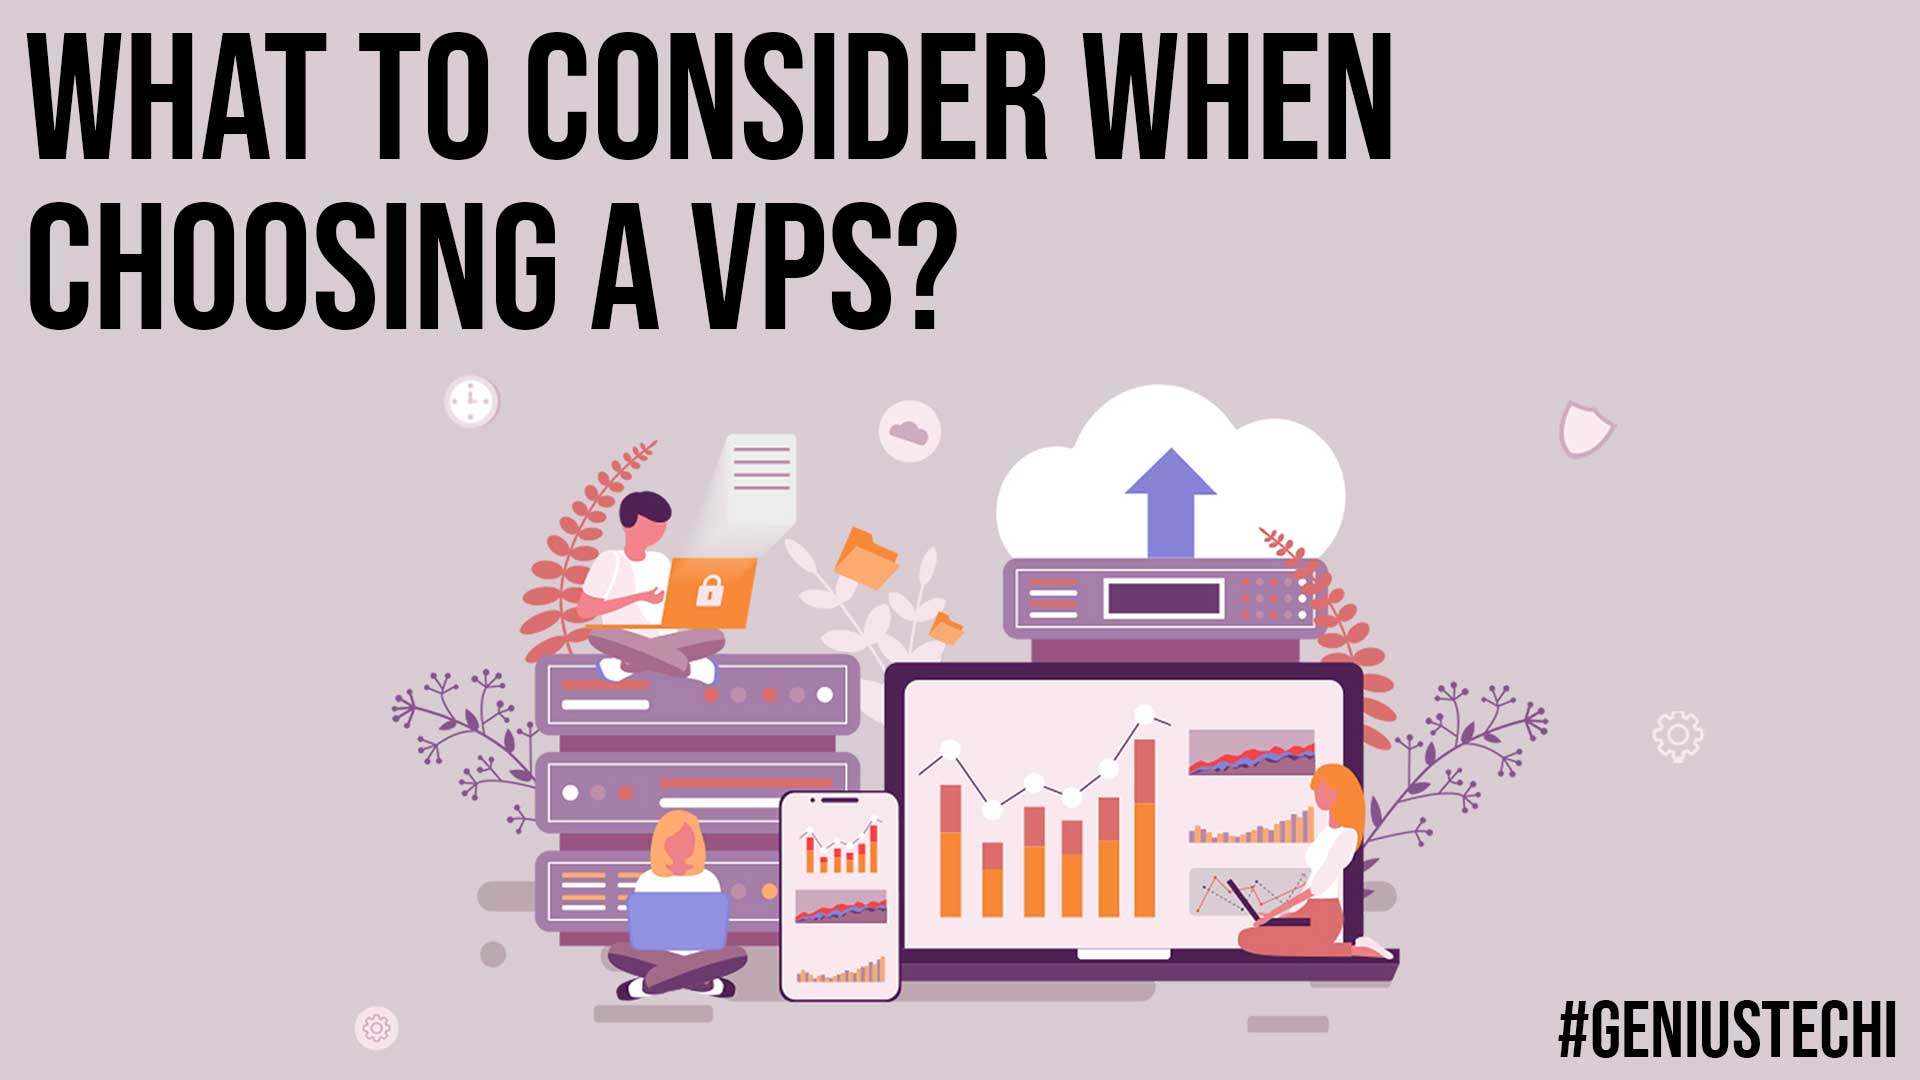 What to Consider When Choosing a VPS